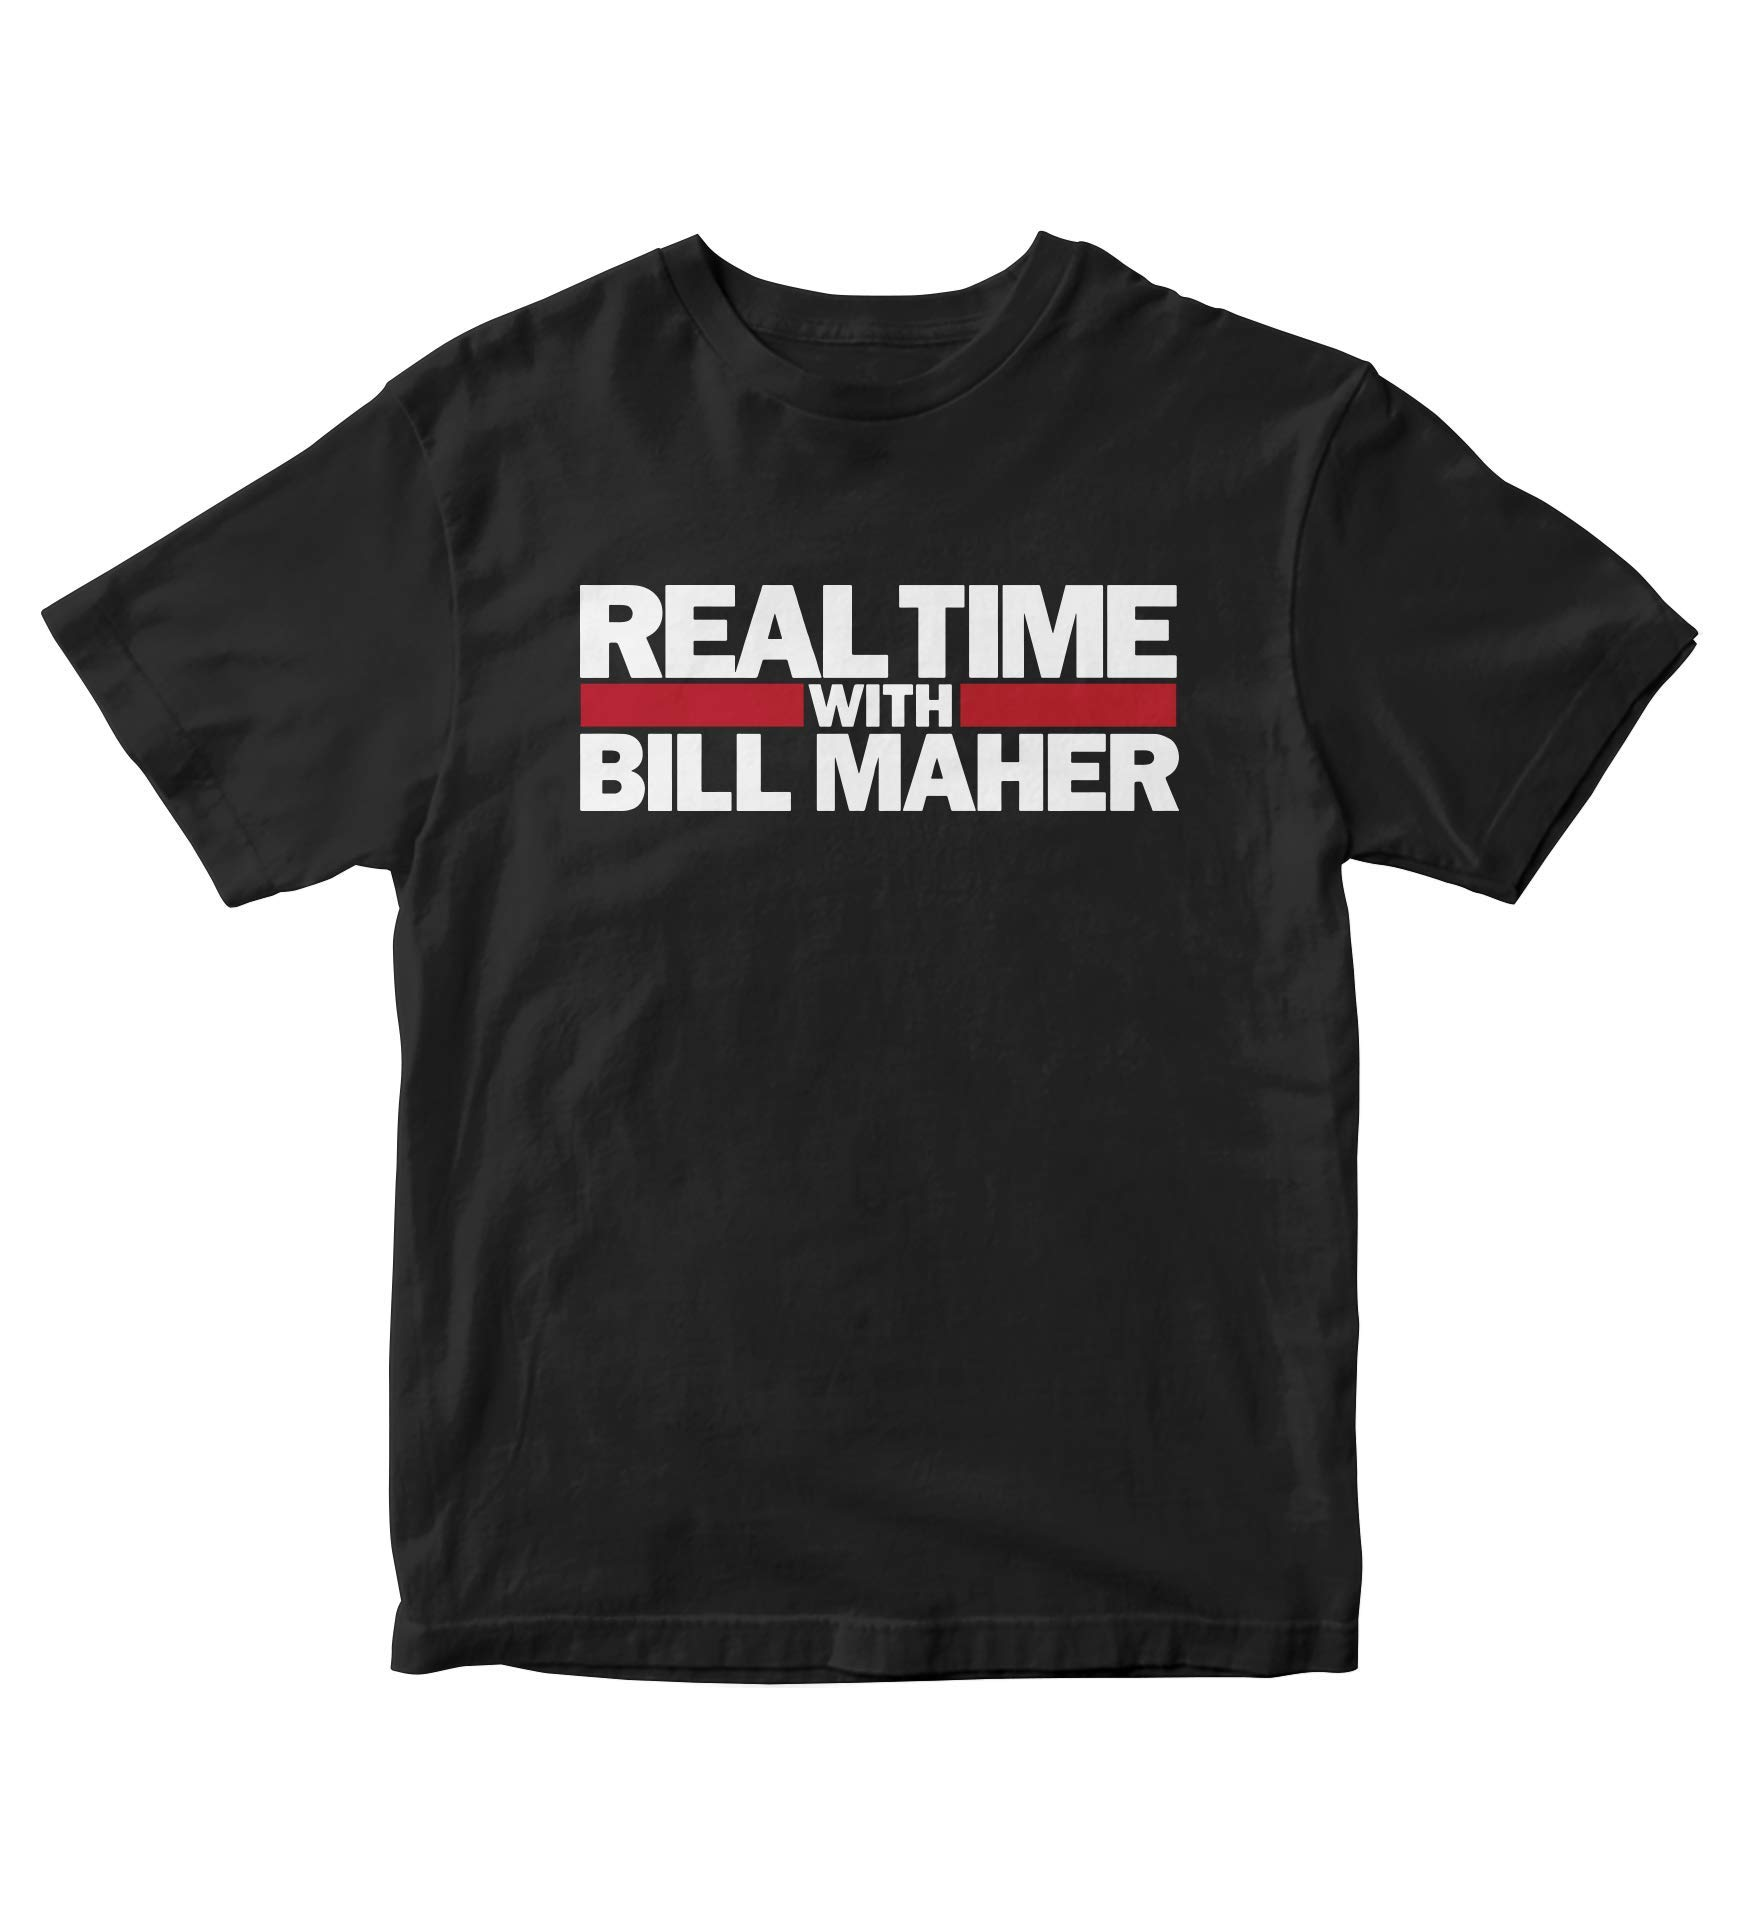 Real Time With Bill Maher Black Shirt S Tv Show M166